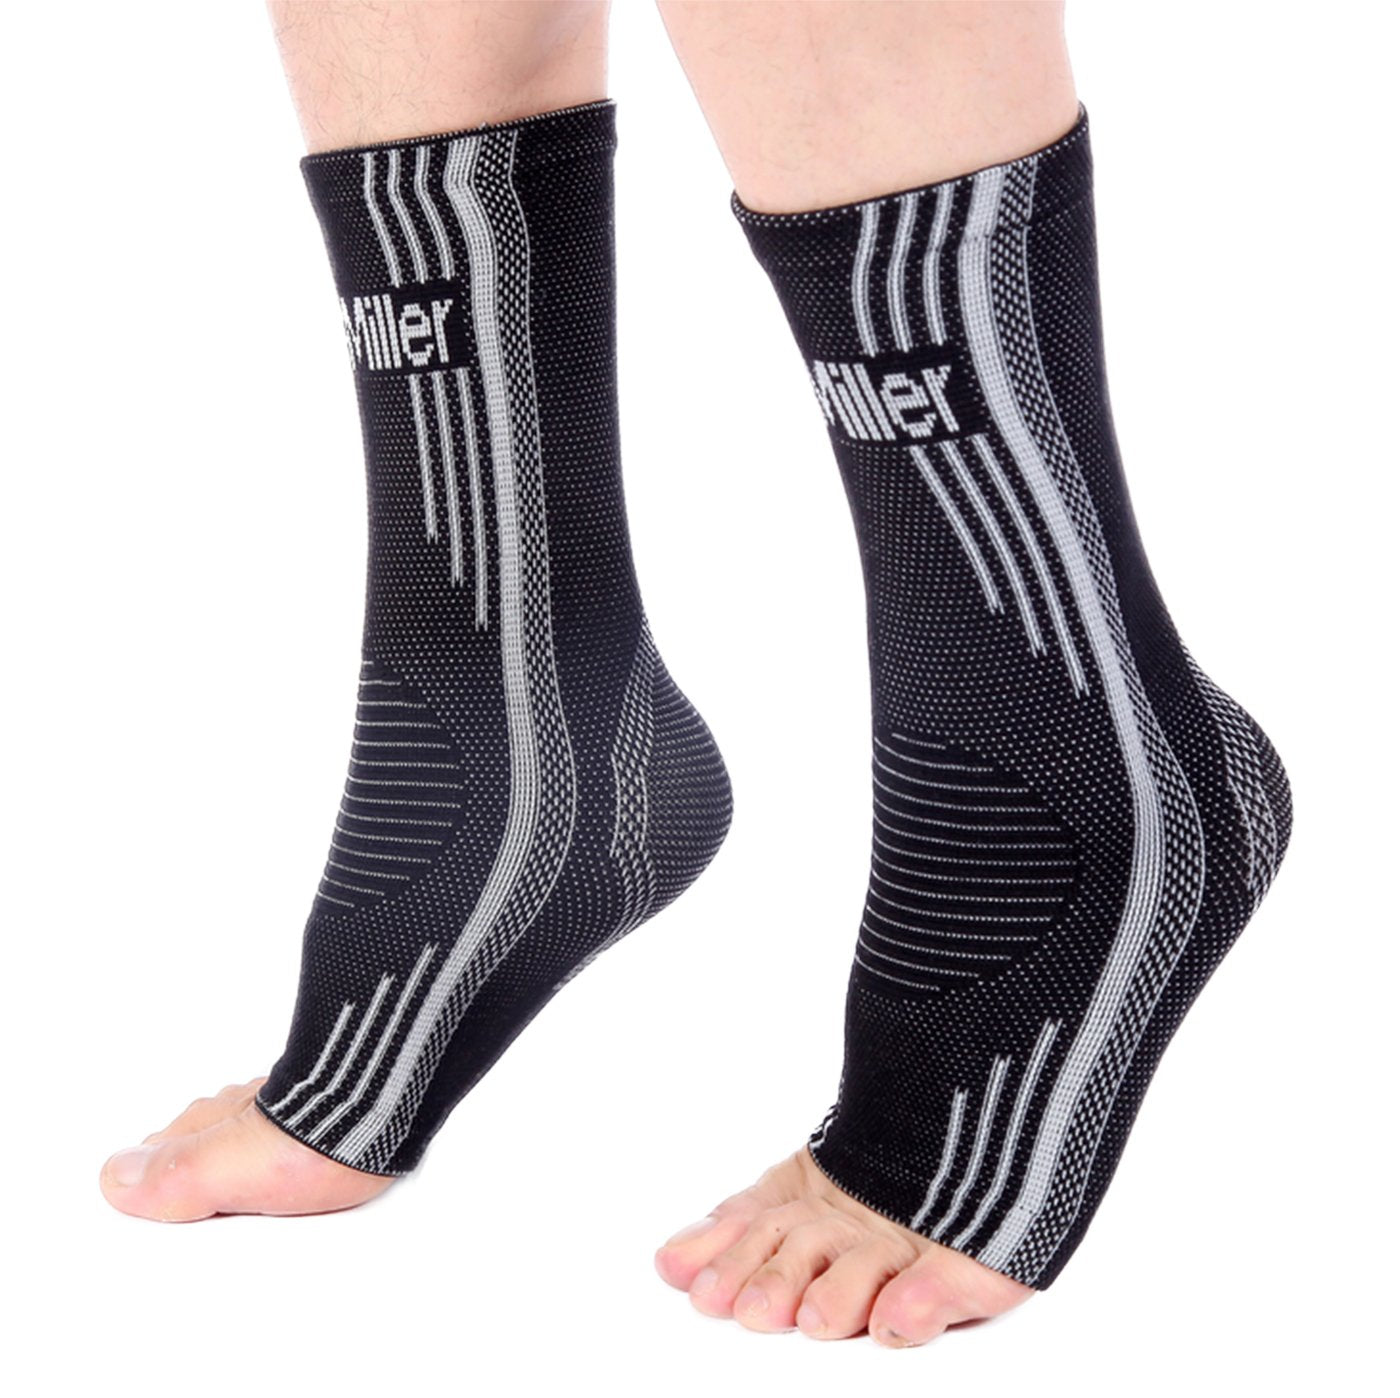 90f55575b6 Ankle Brace Compression Support Sleeve for Plantar Fasciitis Tendinitis  Foot Pain. Doc Miller 20 reviews